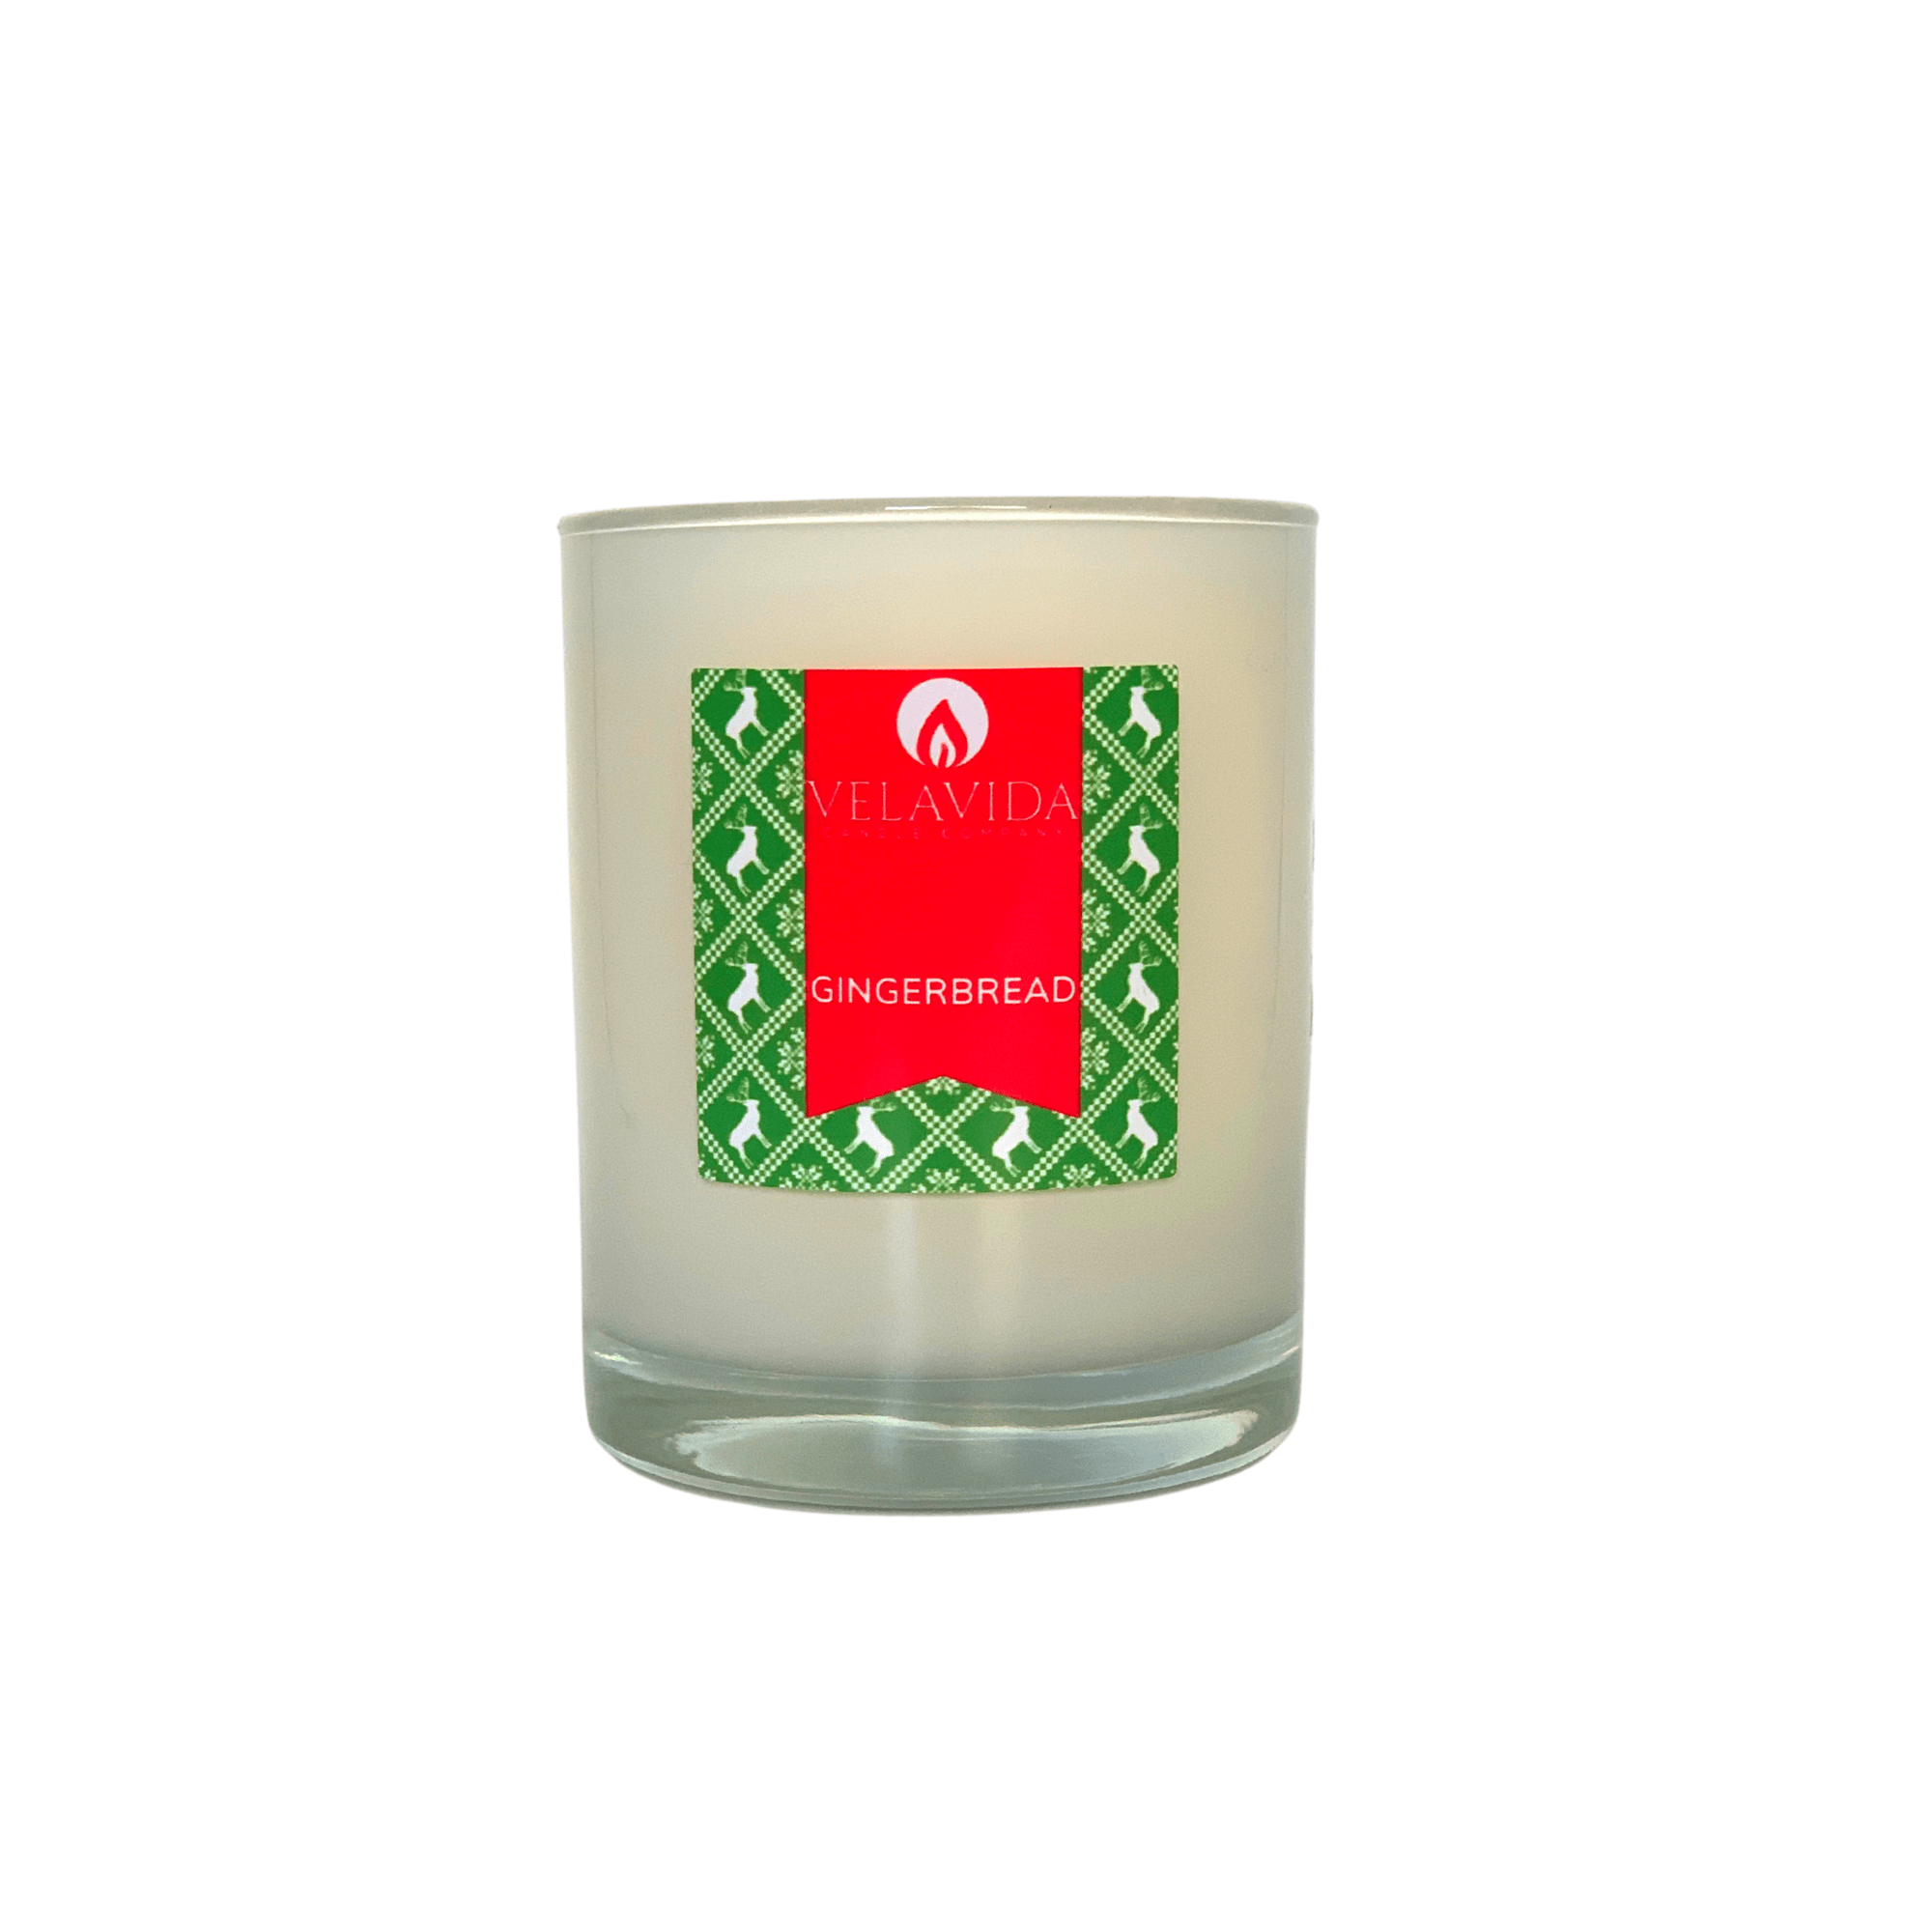 Gingerbread Candle 11oz.